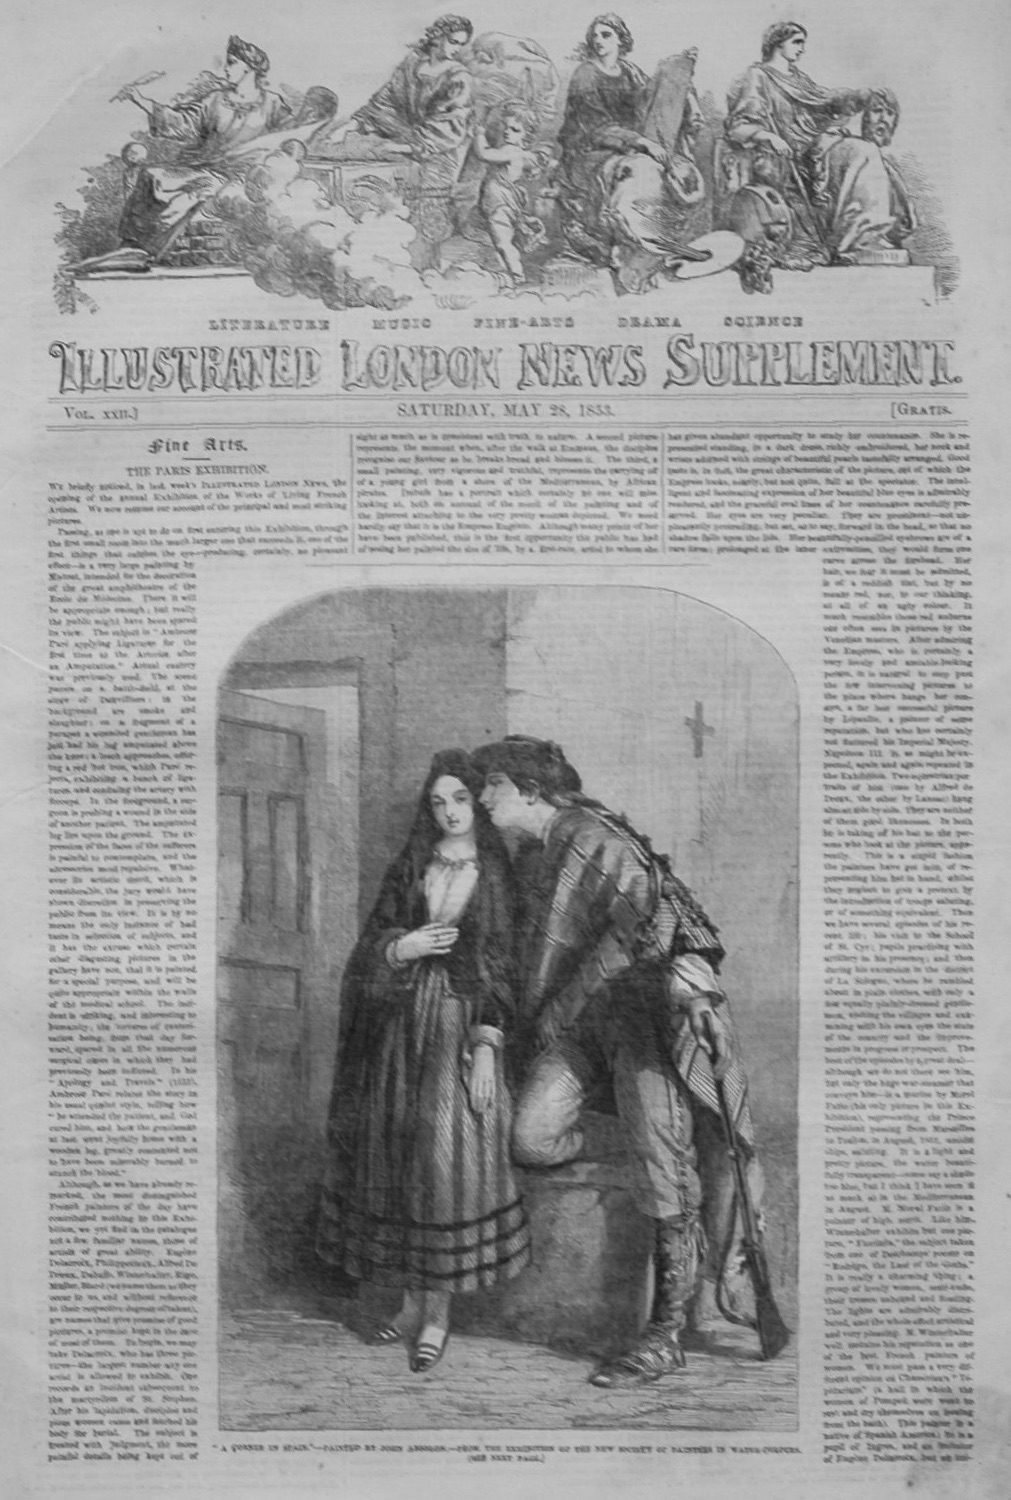 Illustrated London News, Supplement for May 28th 1853.